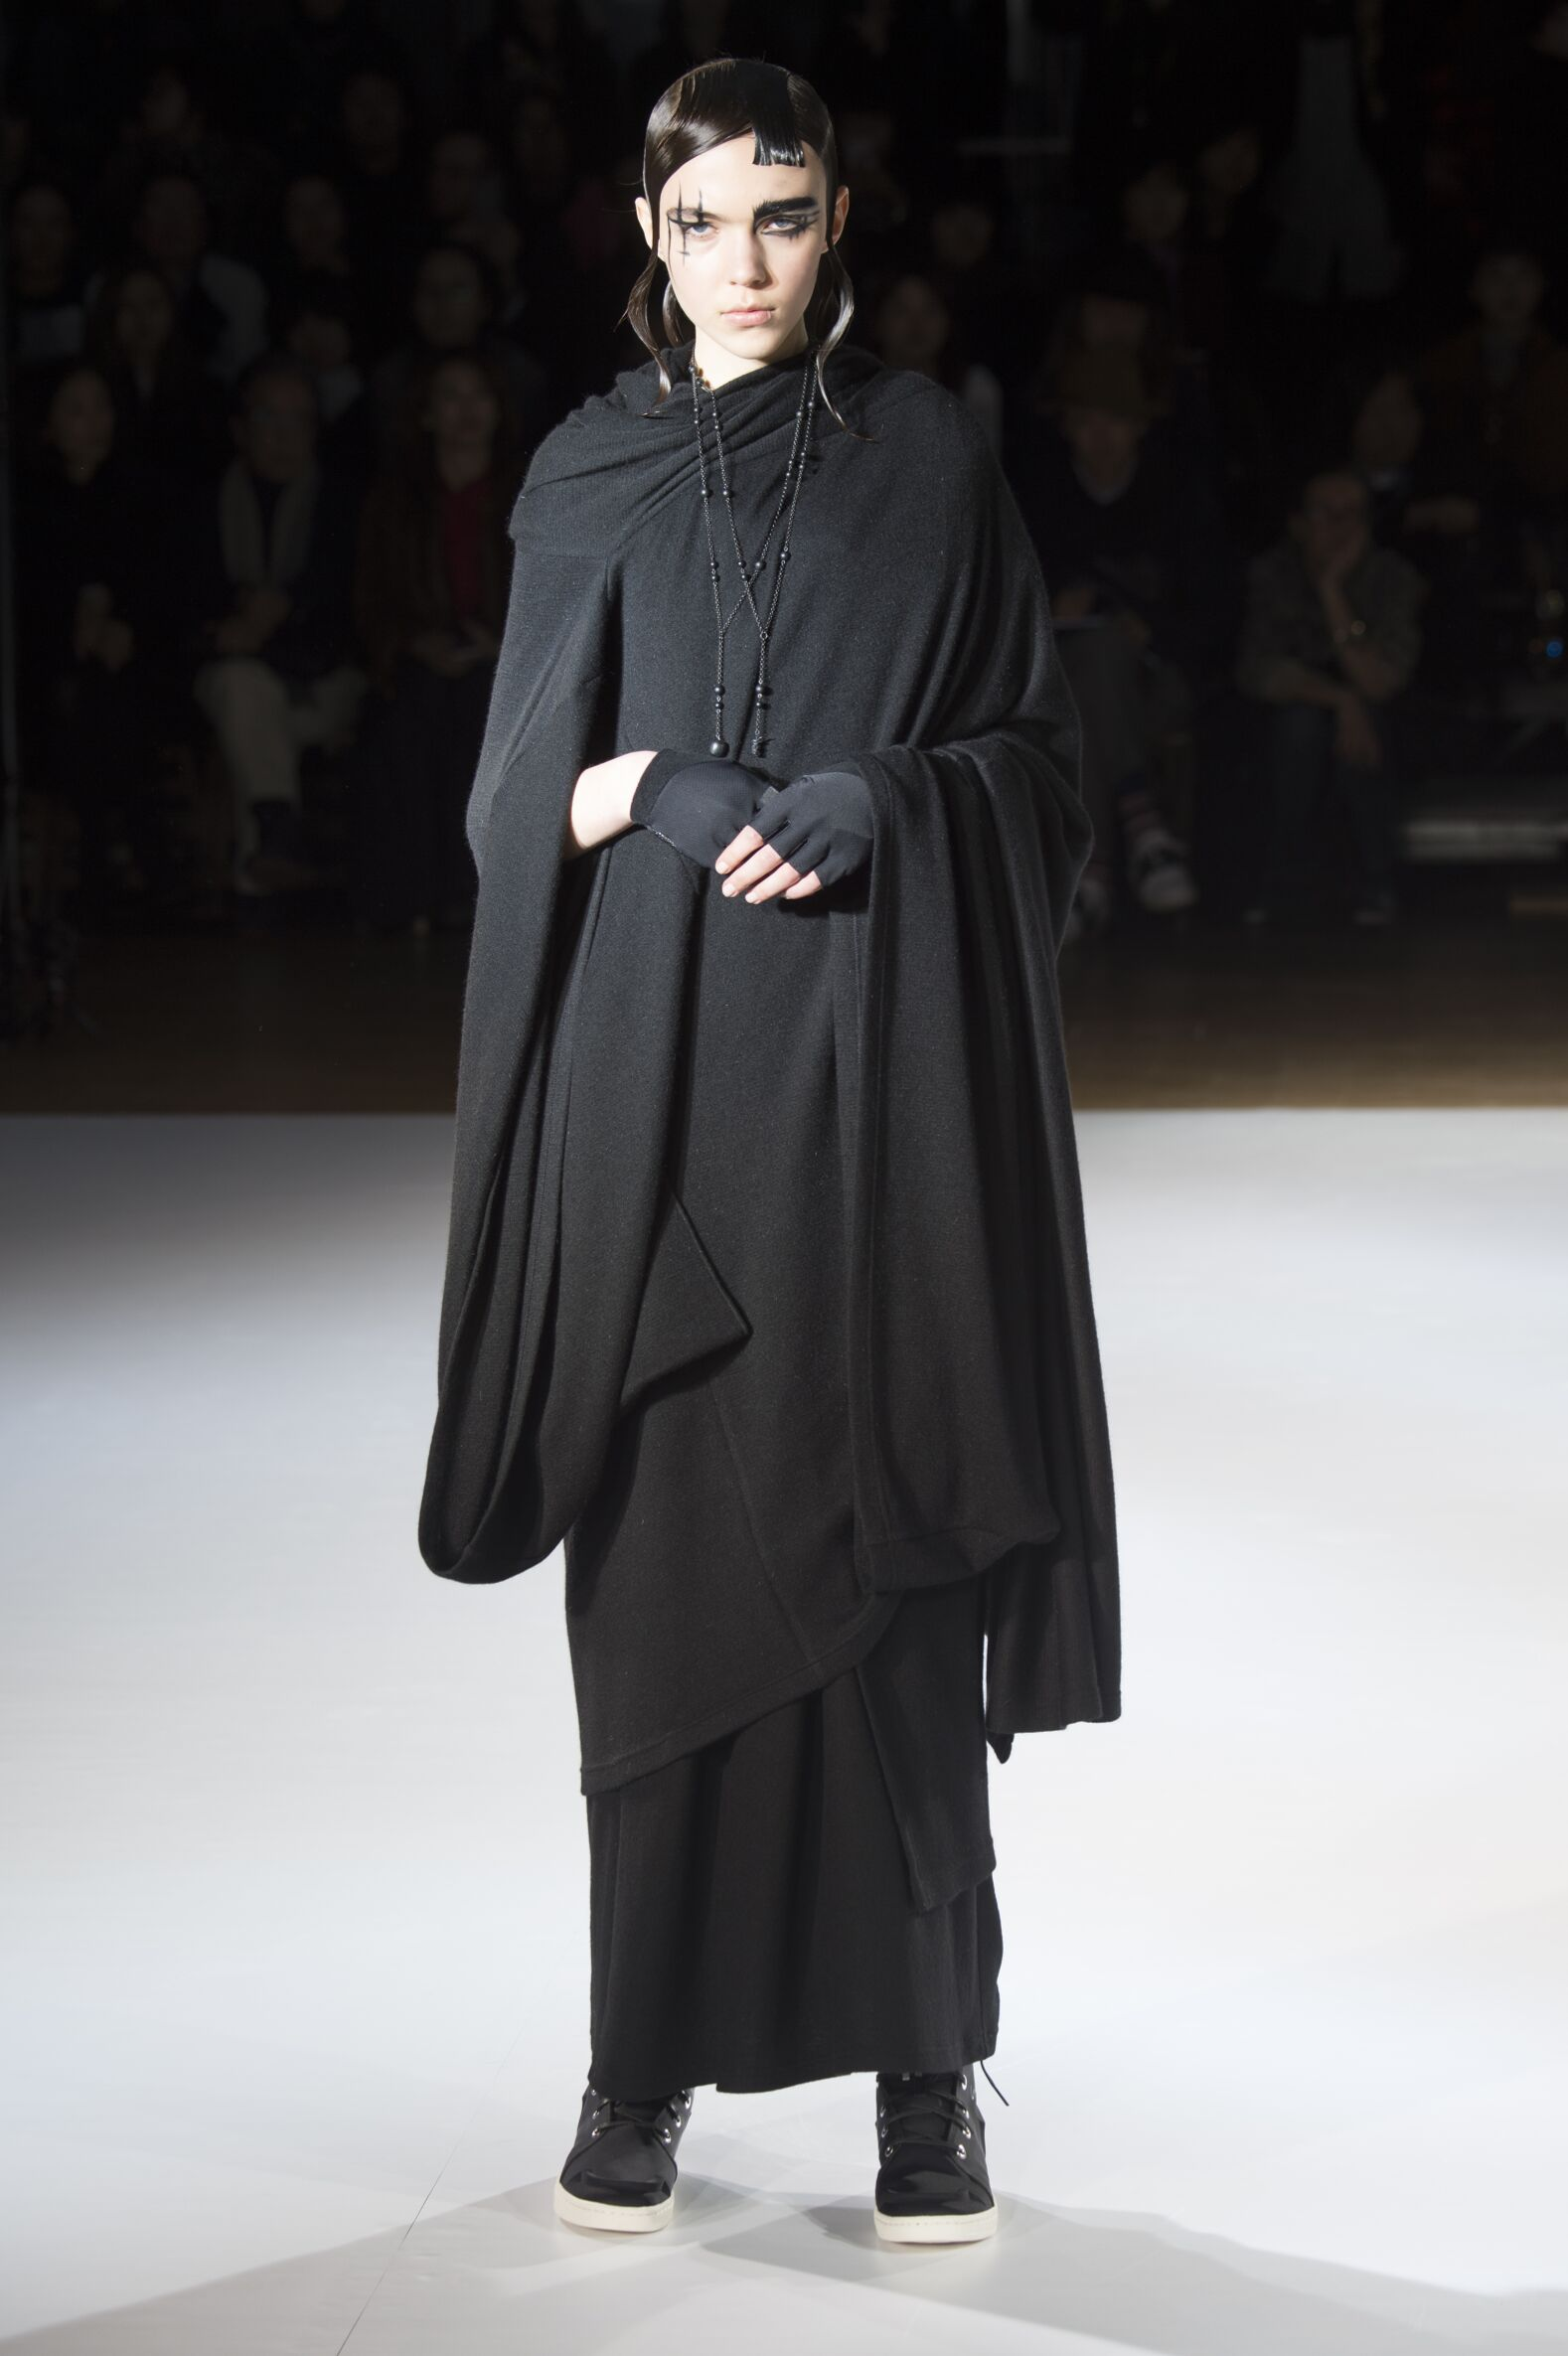 Yohji Yamamoto Collection Woman Paris Fashion Week